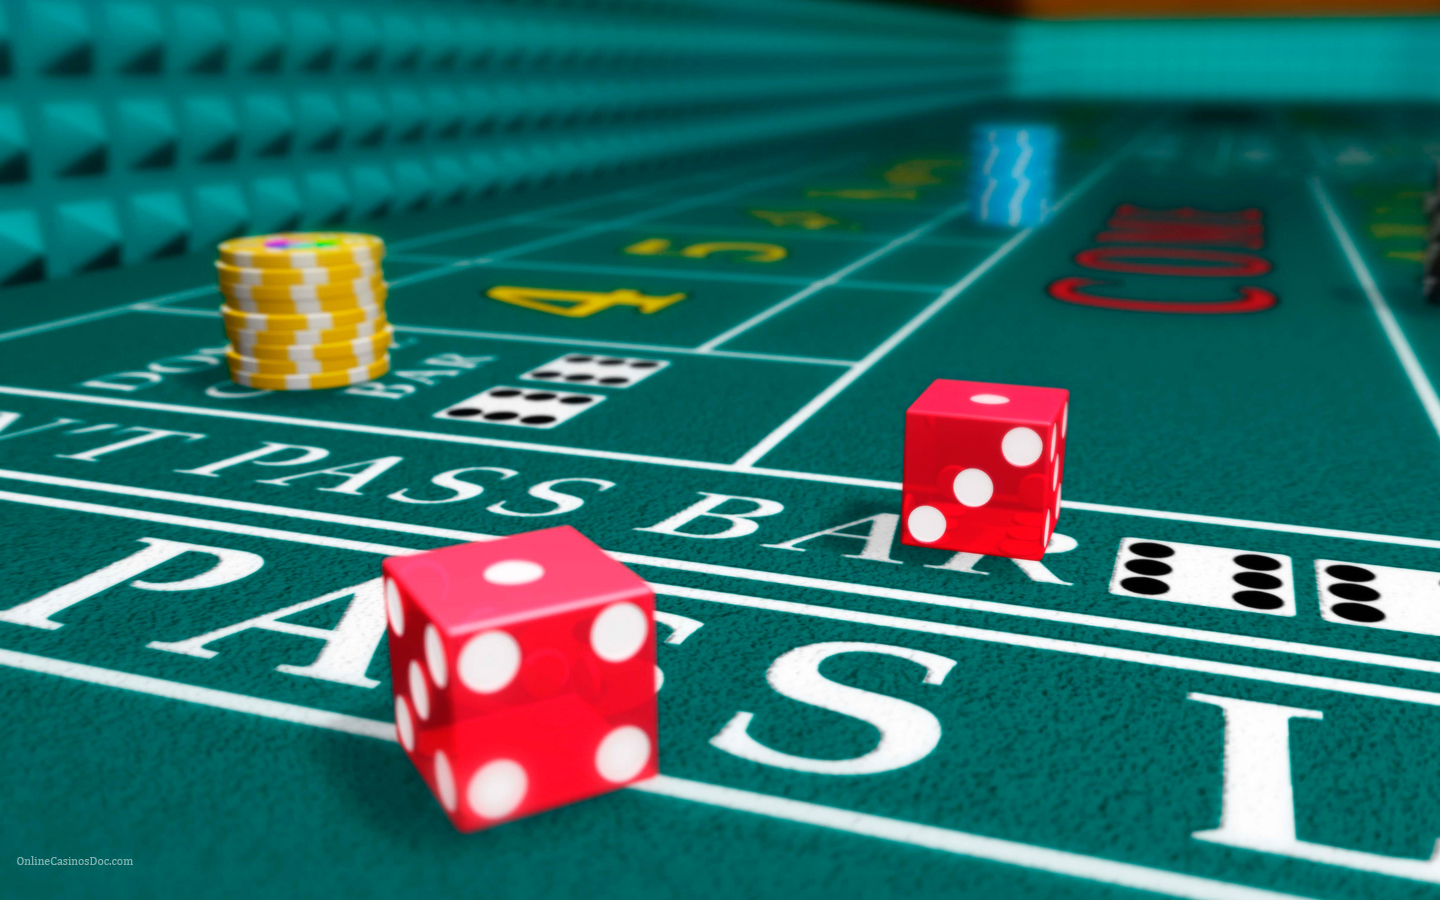 Want More Time? Read These Tricks To Remove Casino Game